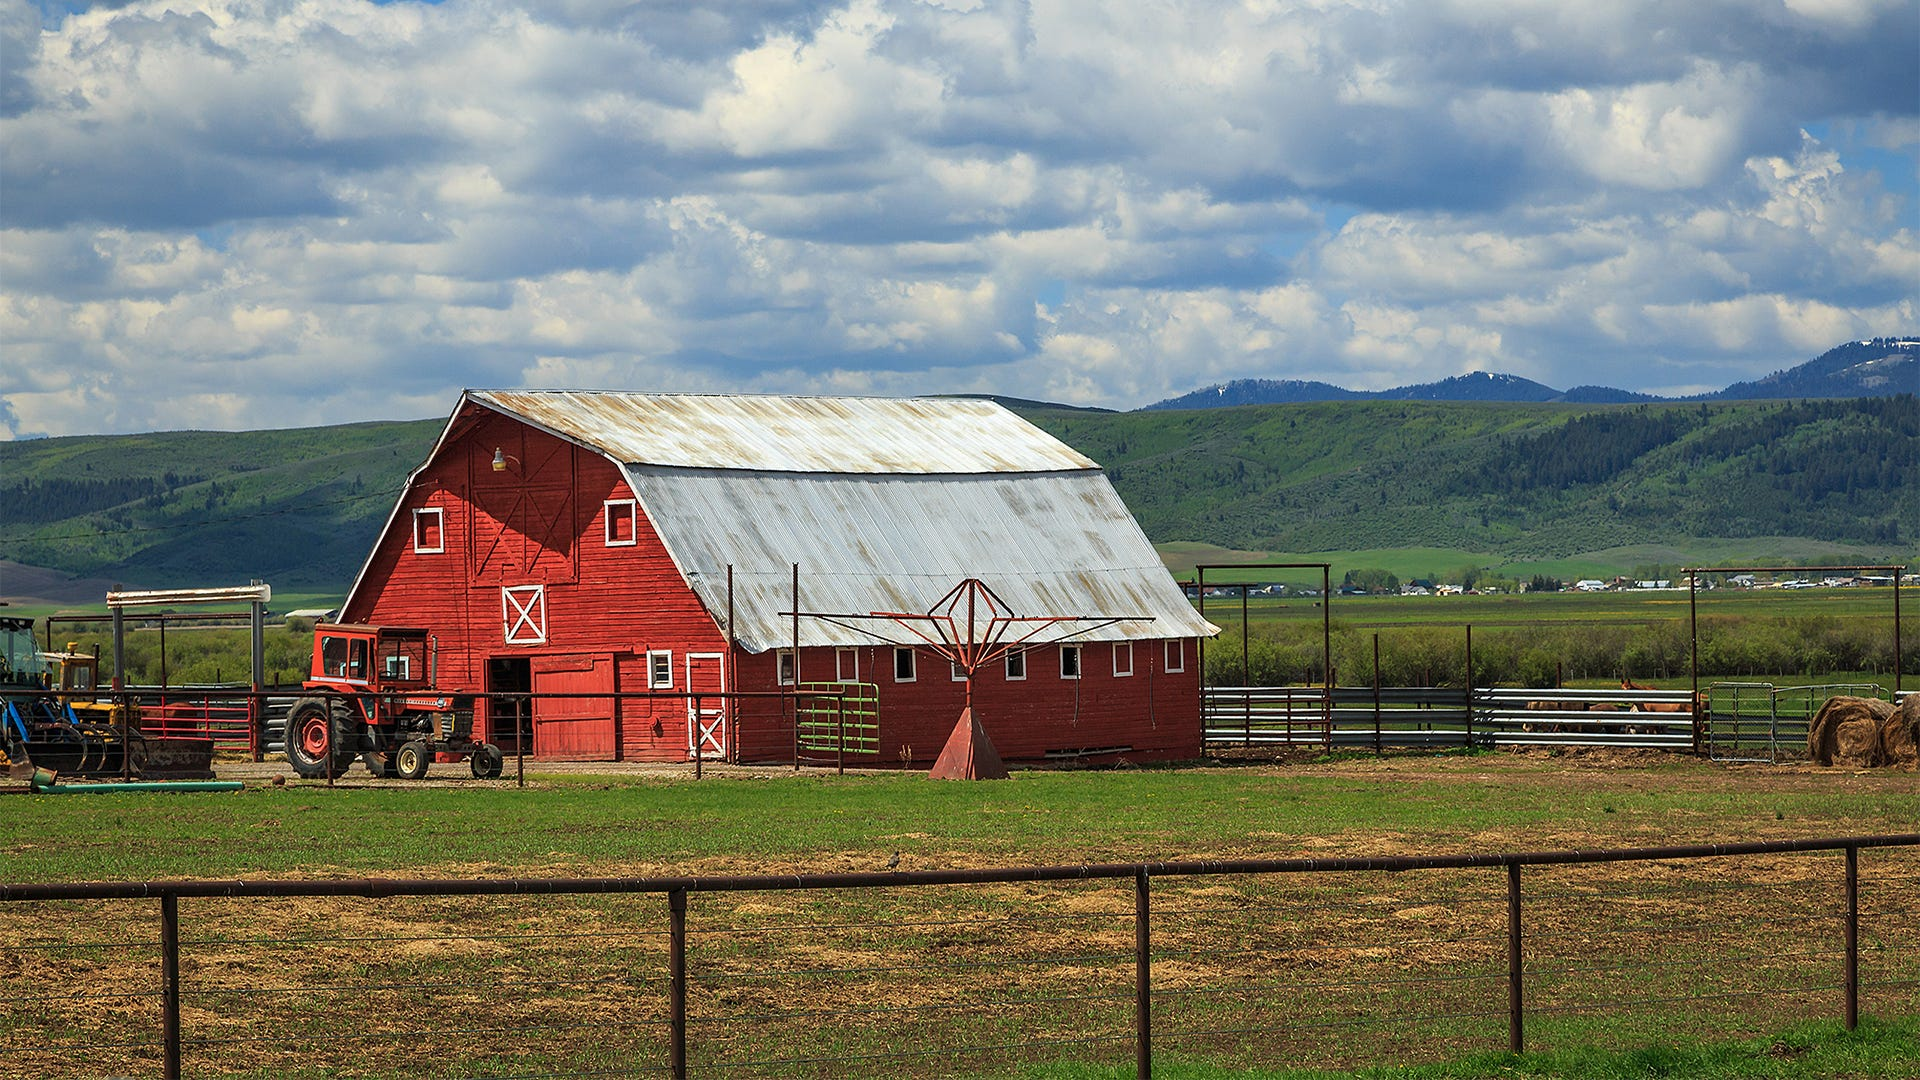 The Ultimate Guide to Mosquito Management on the Farm